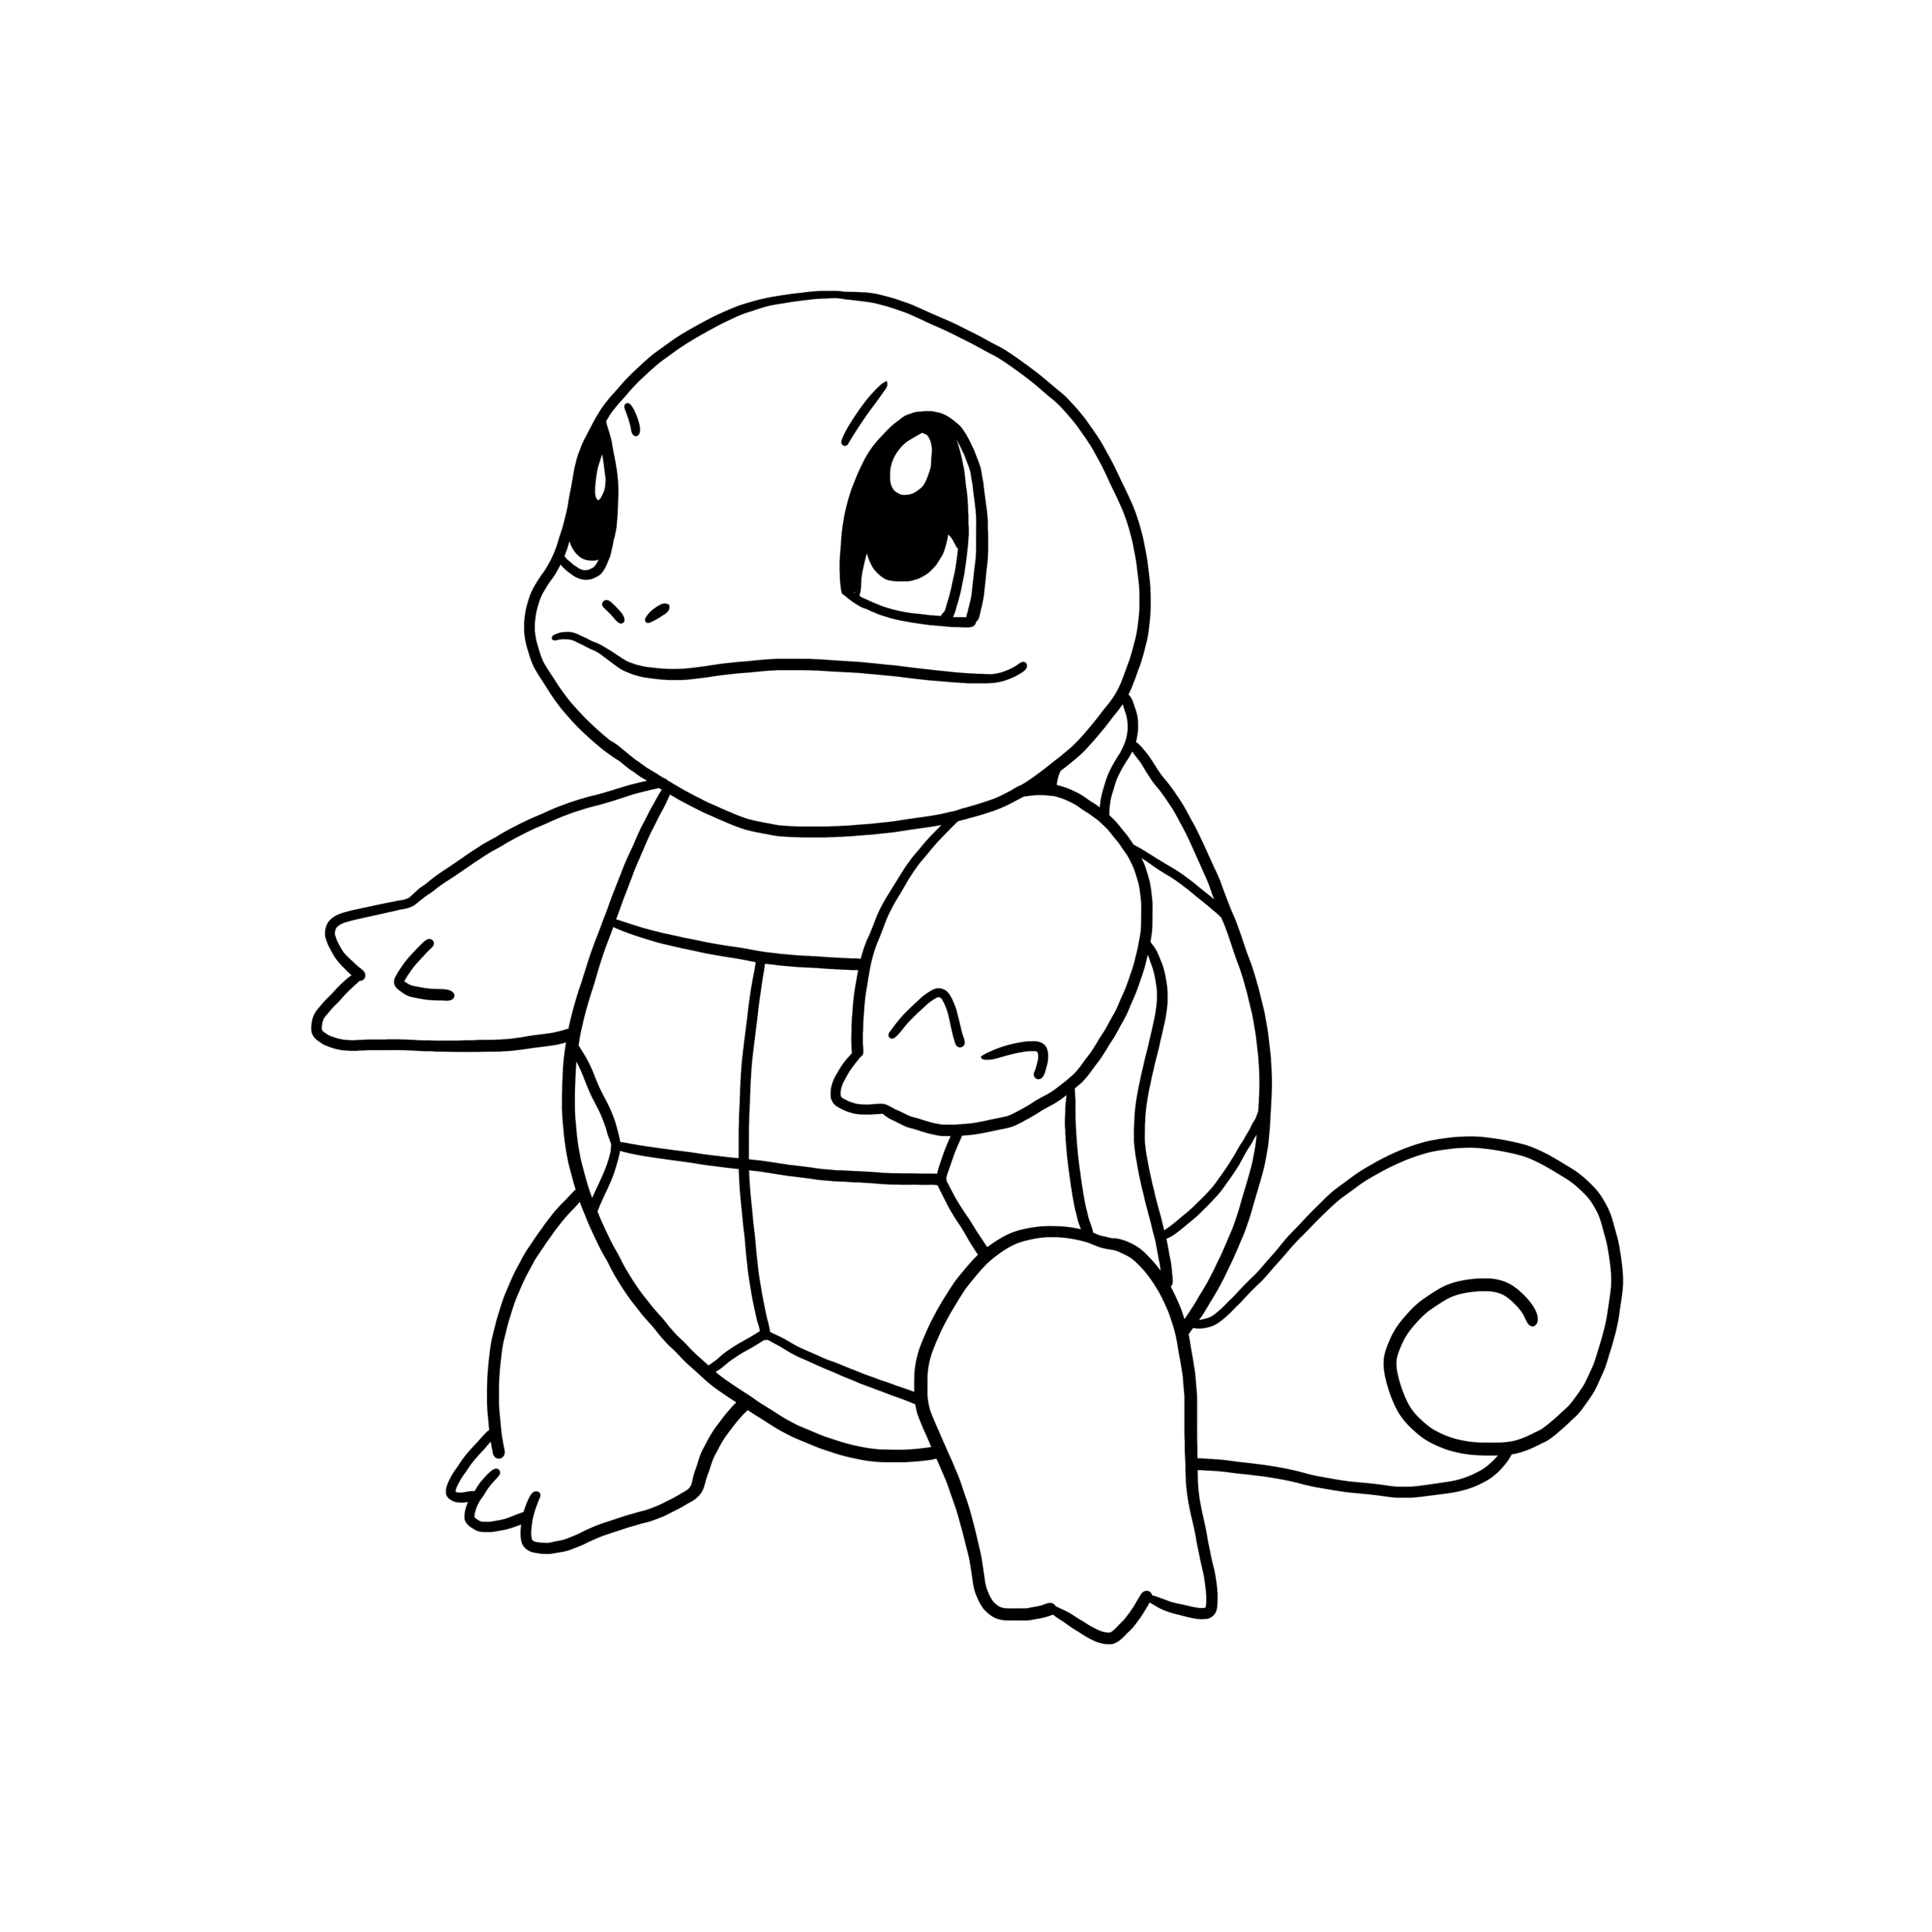 pokemon squirtle coloring pages - photo#9